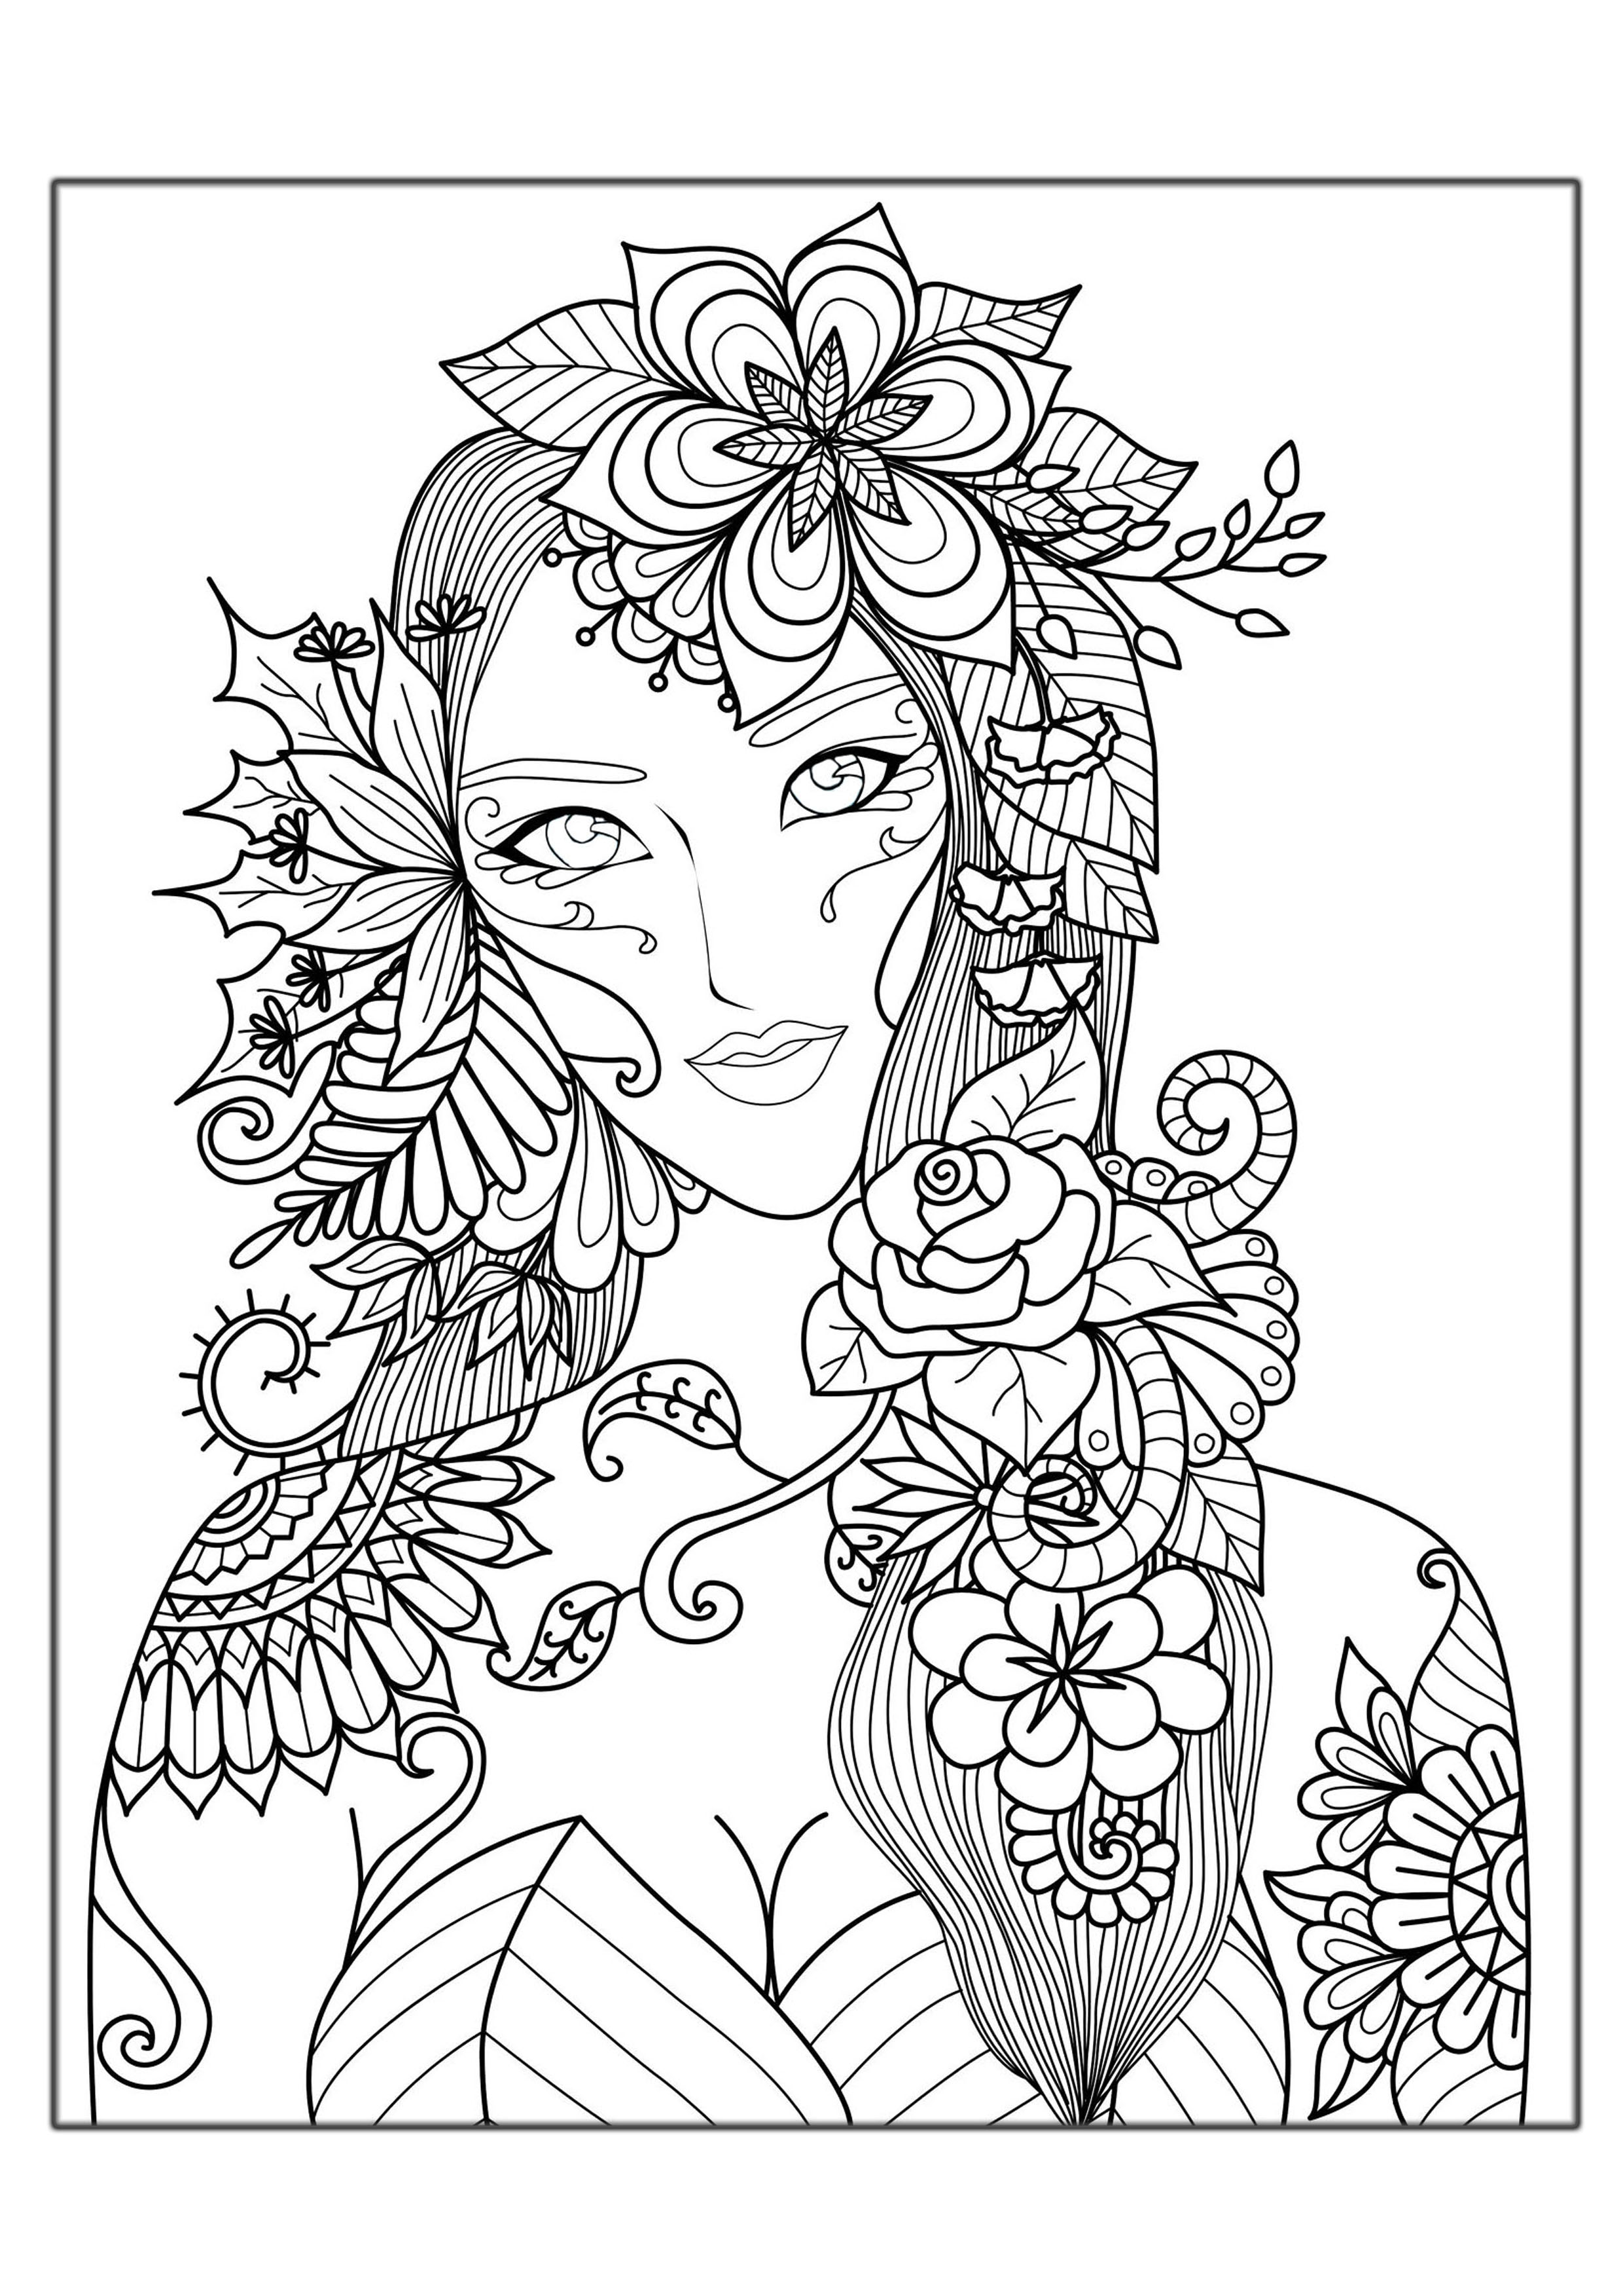 coloring adults pages free coloring pages adult coloring worldwide pages adults coloring